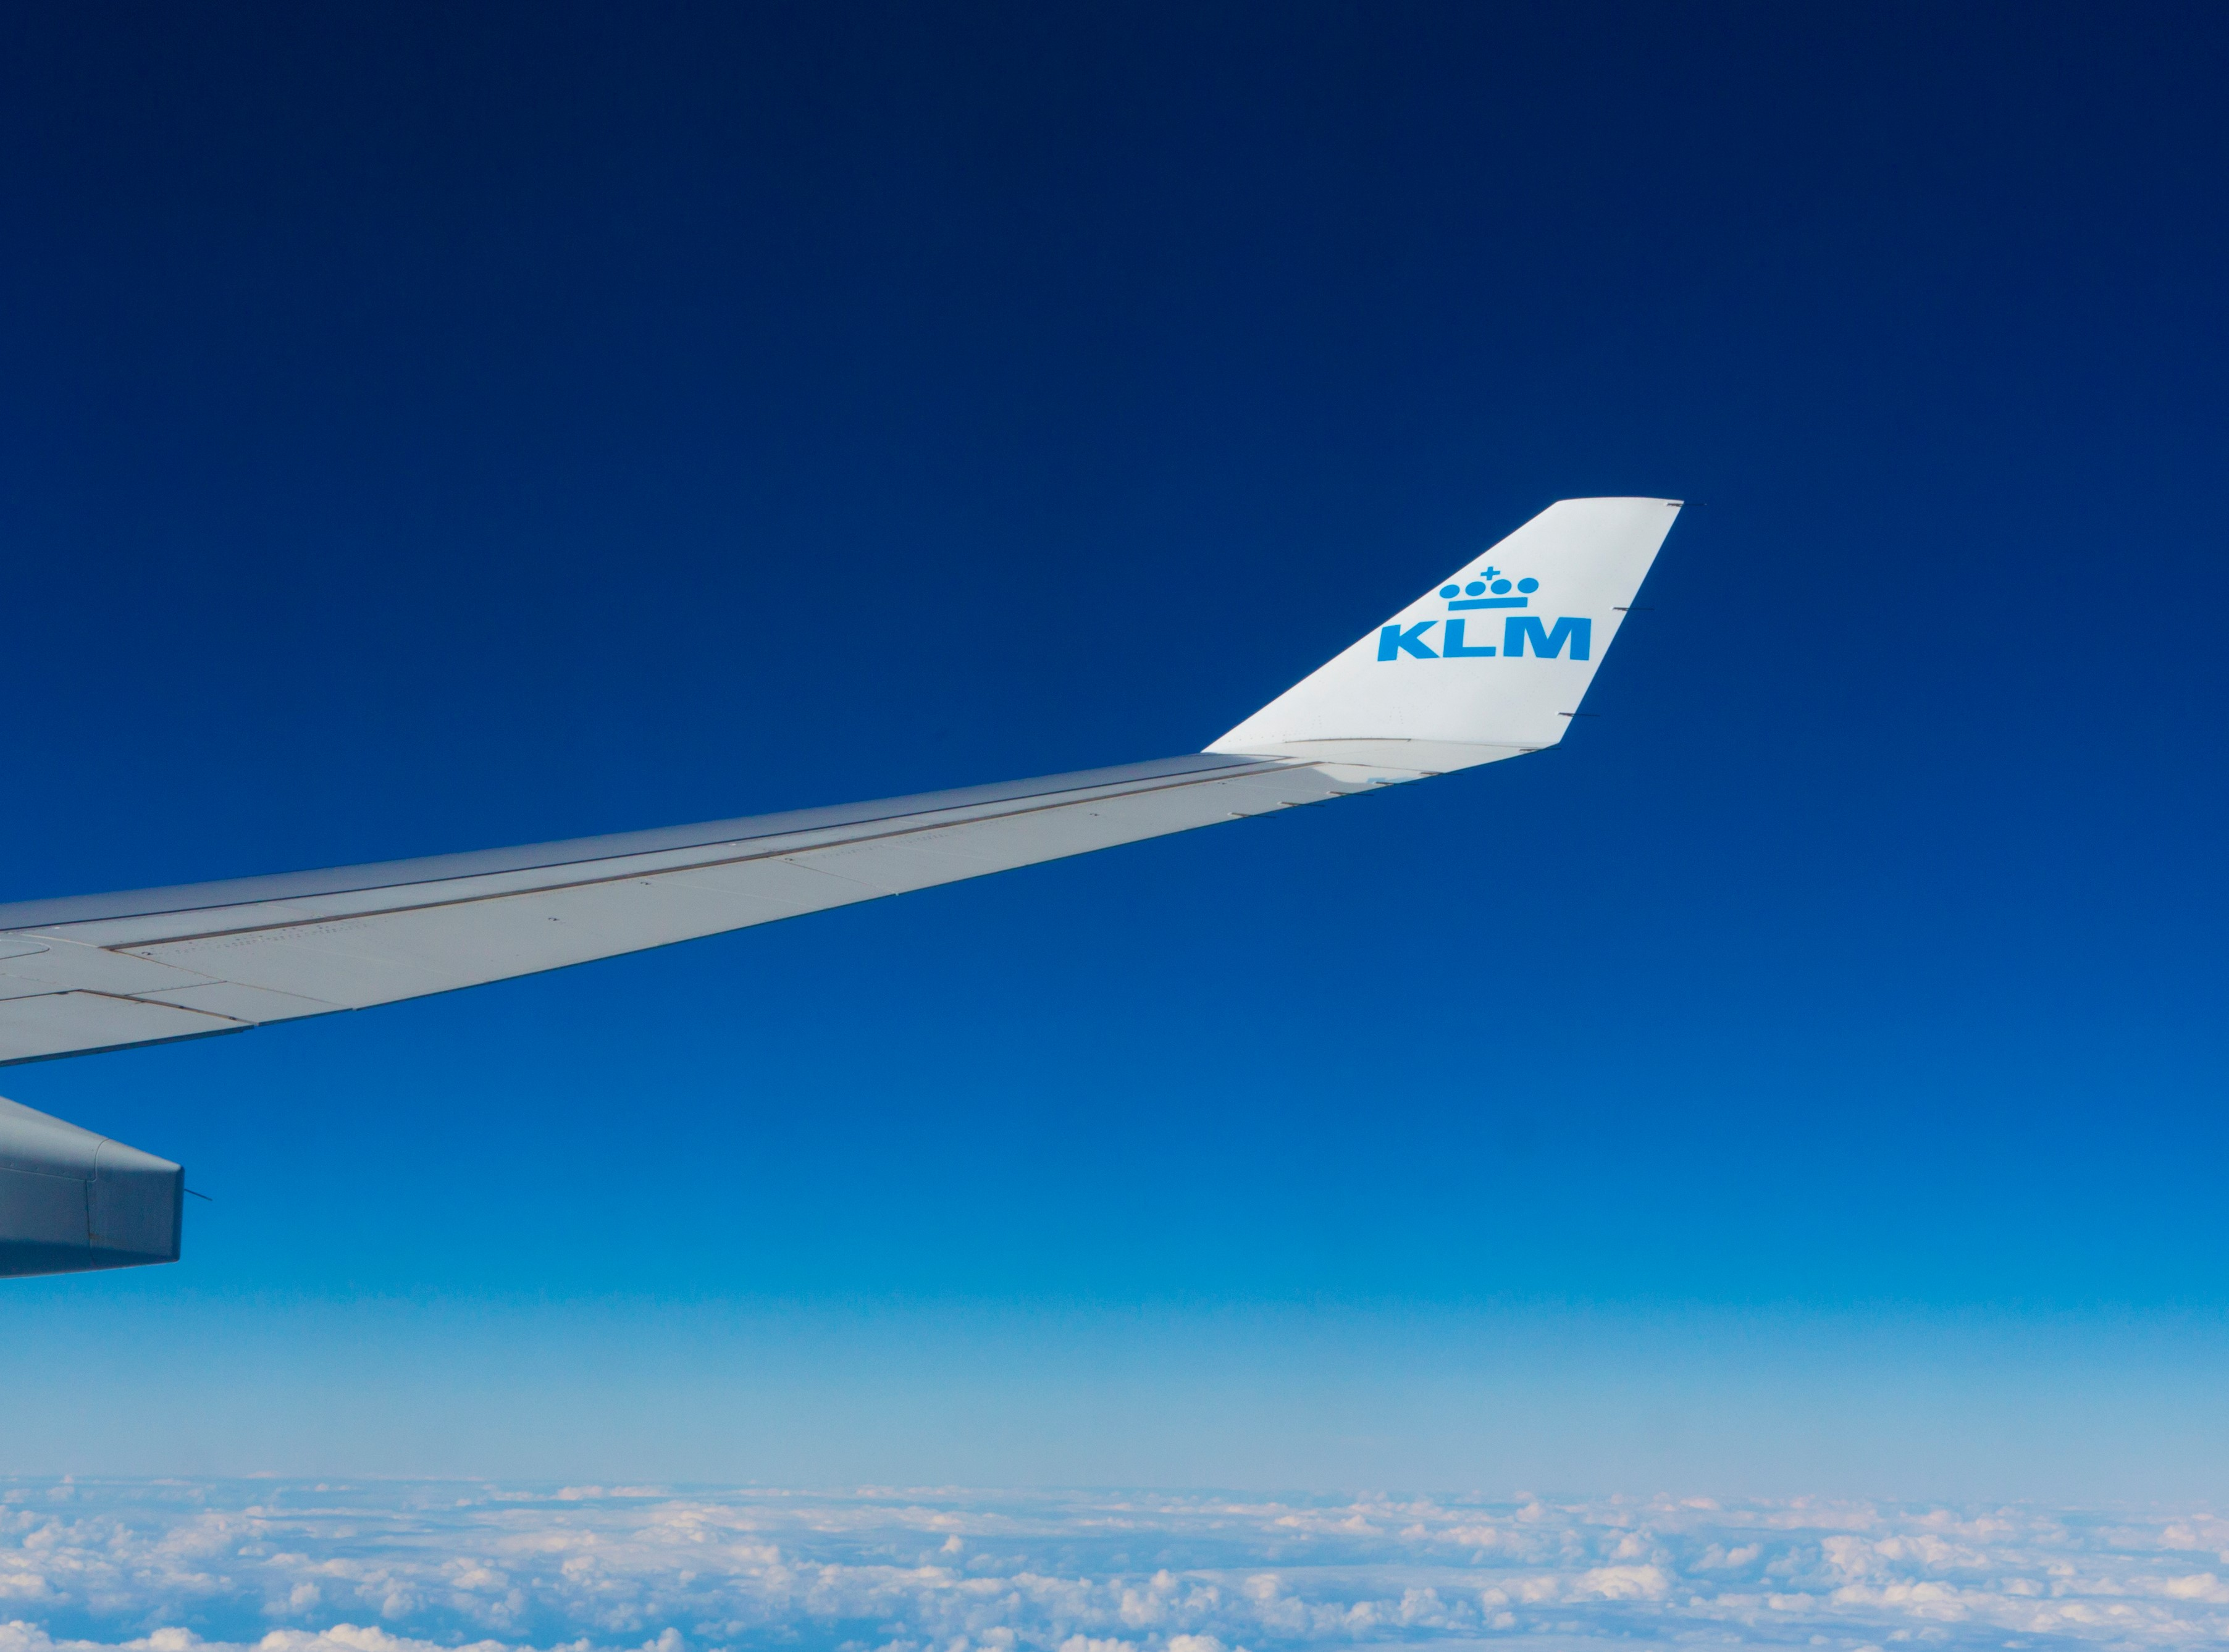 KLM is expanding its network to Austin, Texas